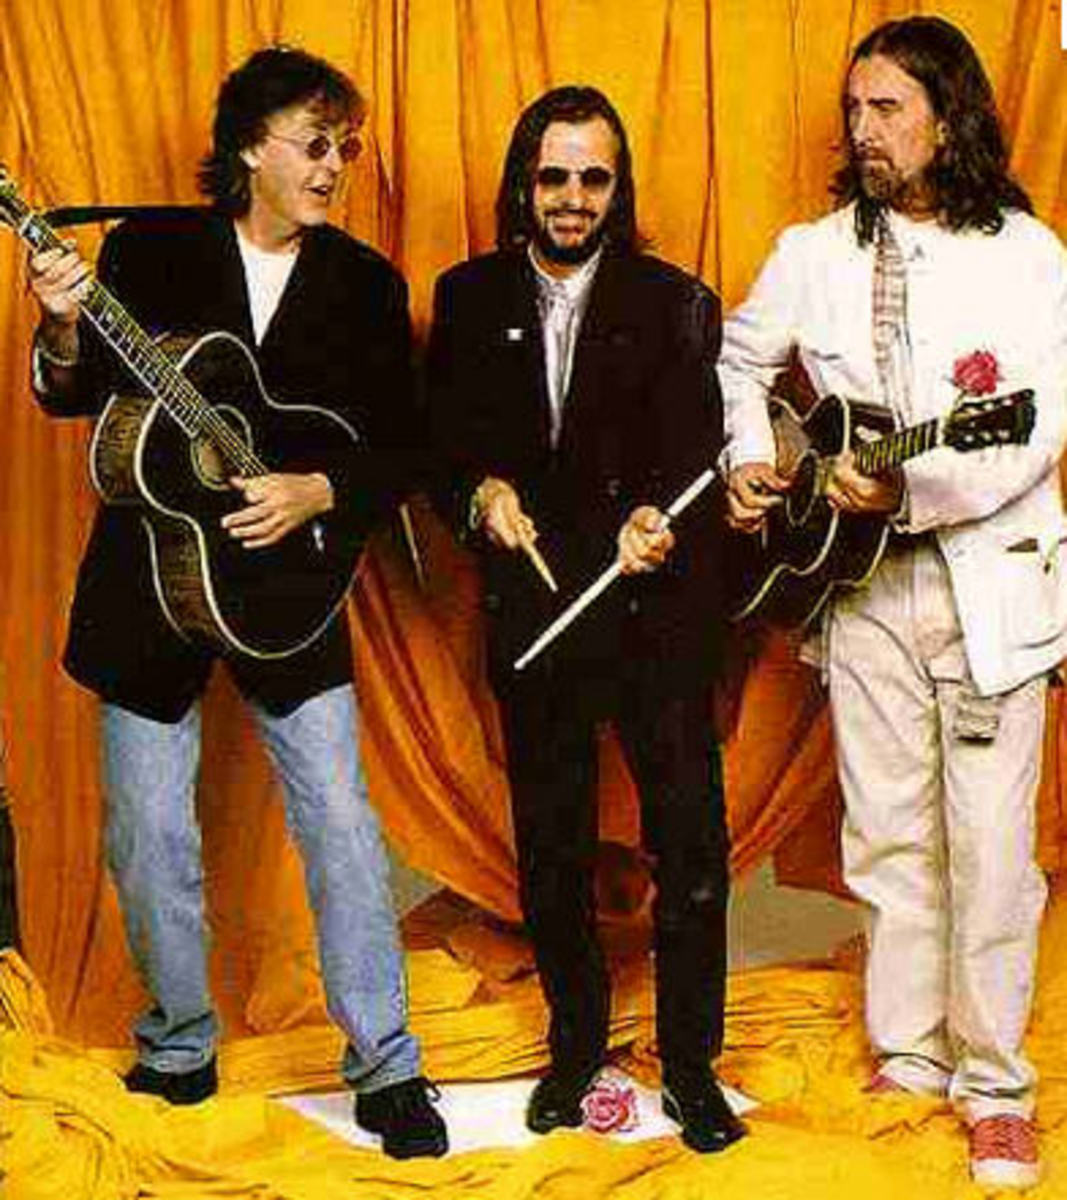 Beatles in 1995